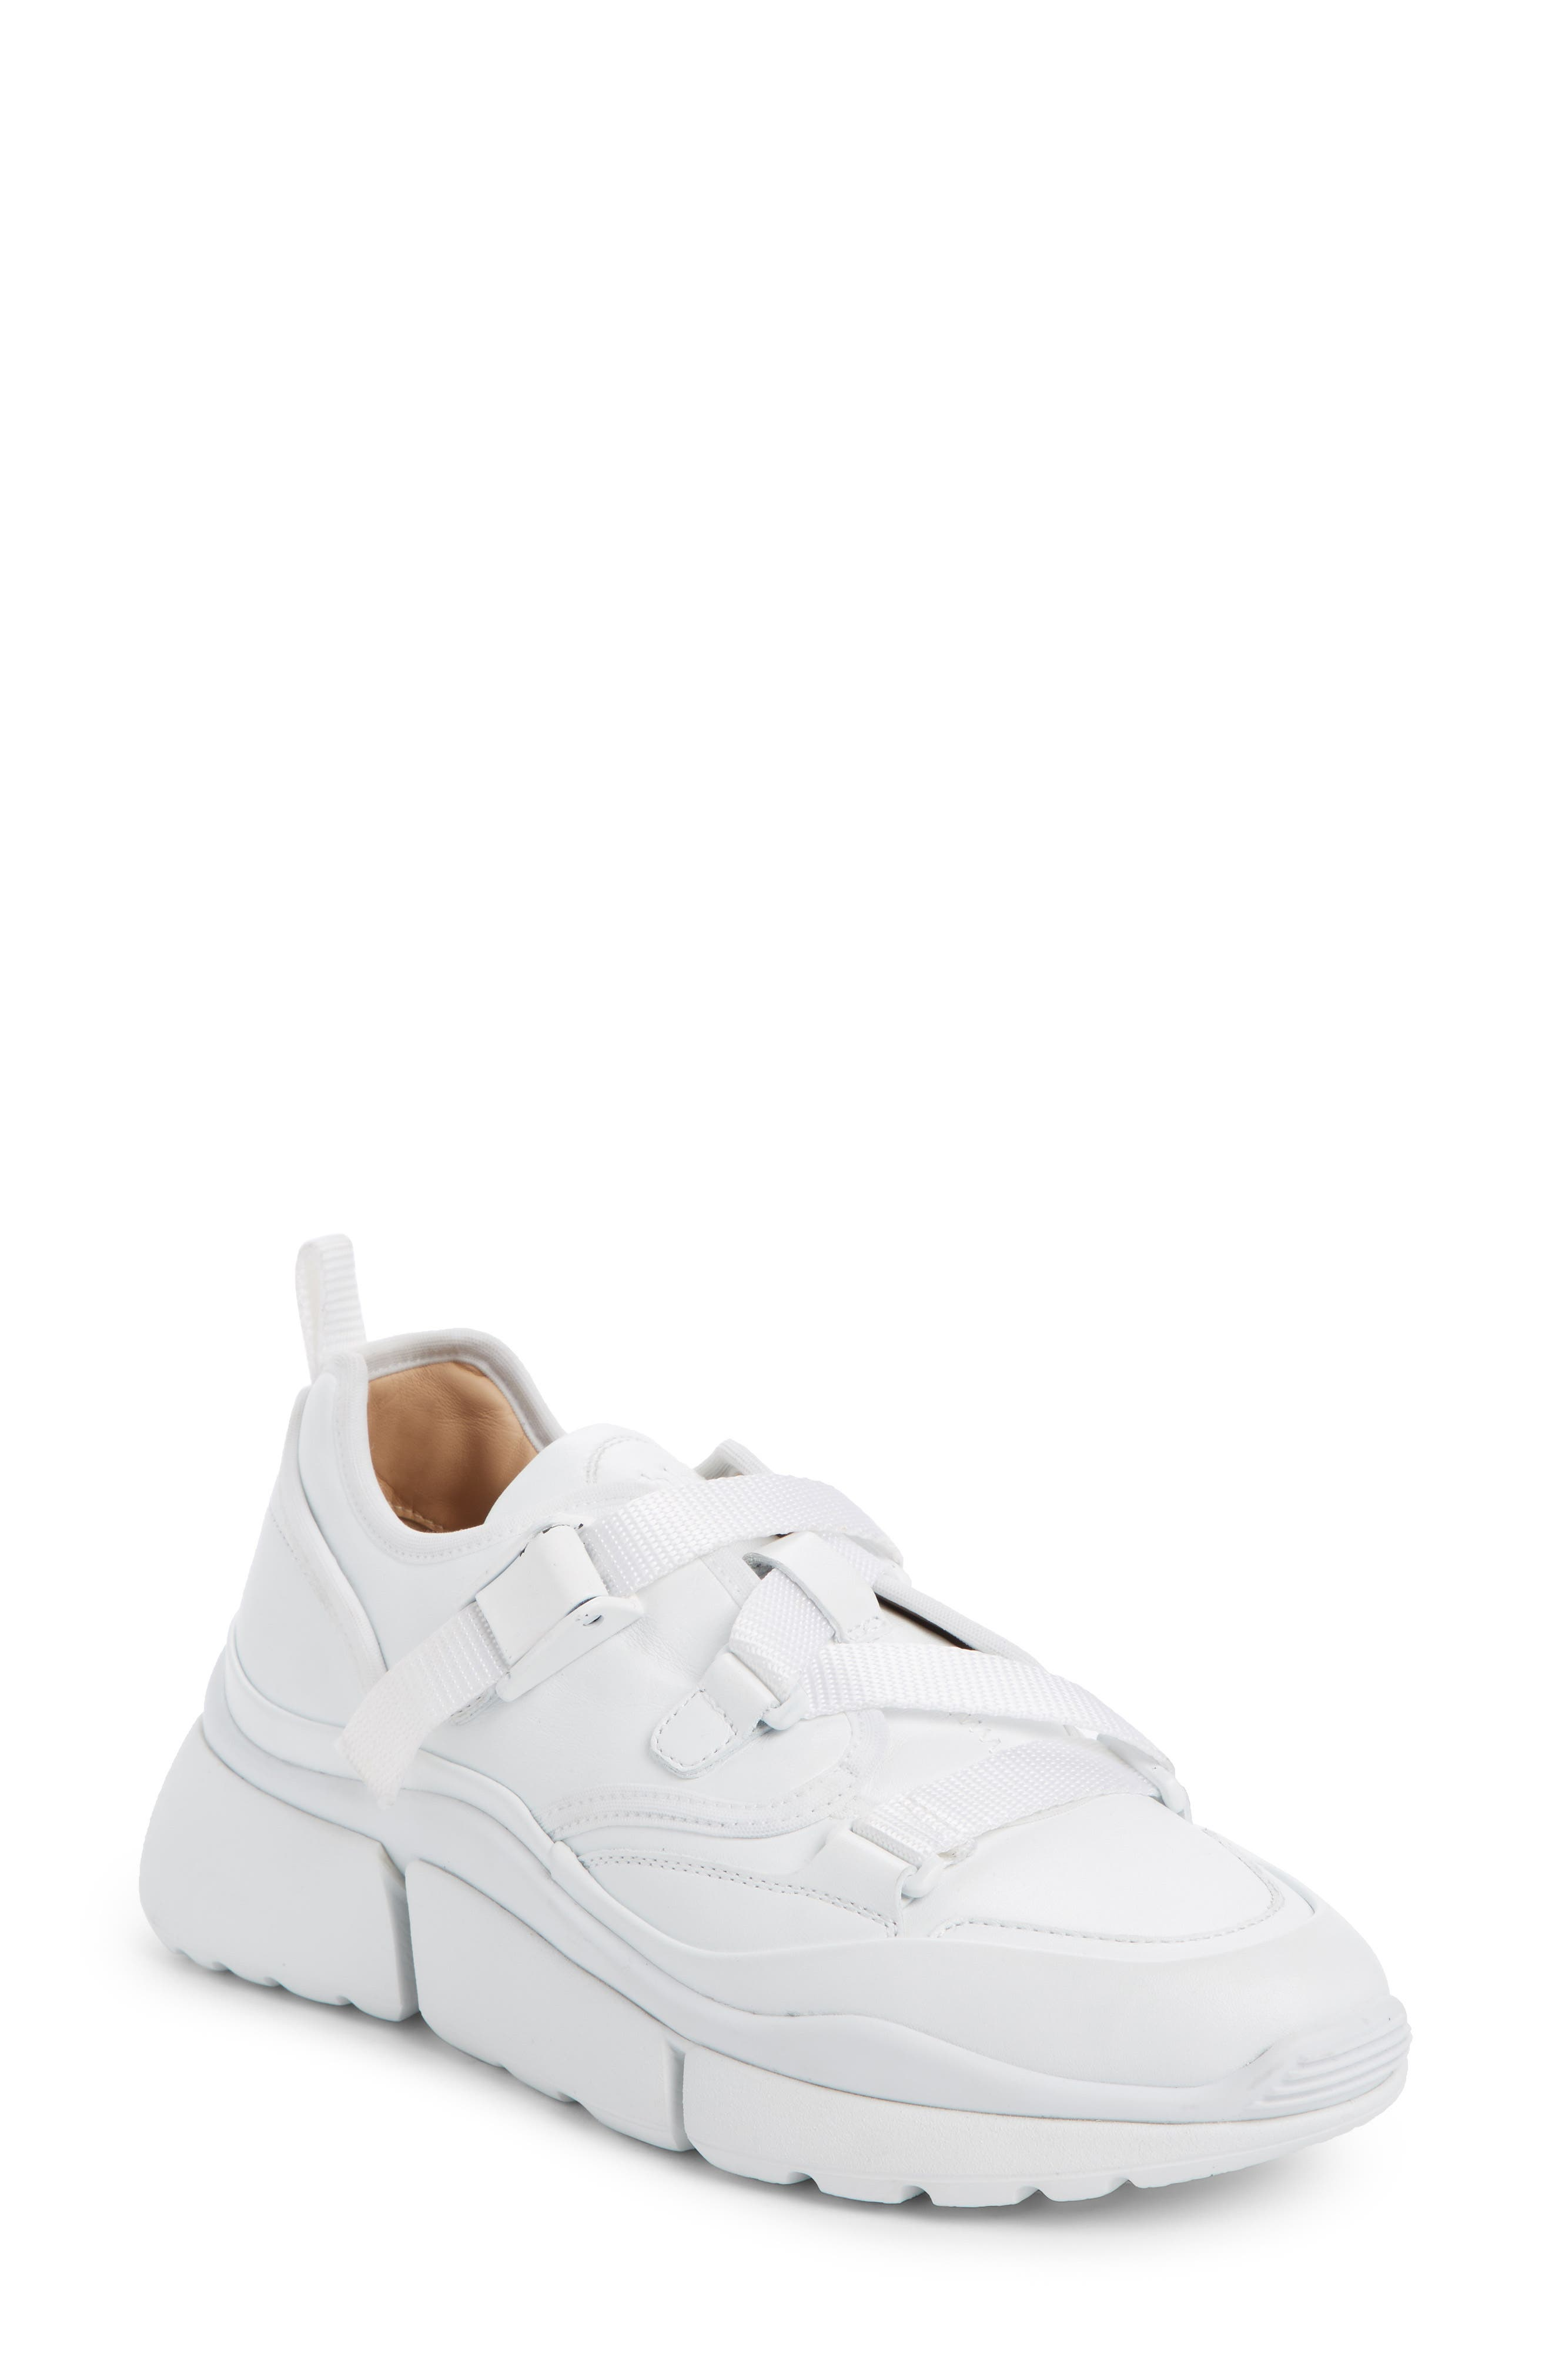 Sonnie Sneaker,                         Main,                         color, WHITE LEATHER